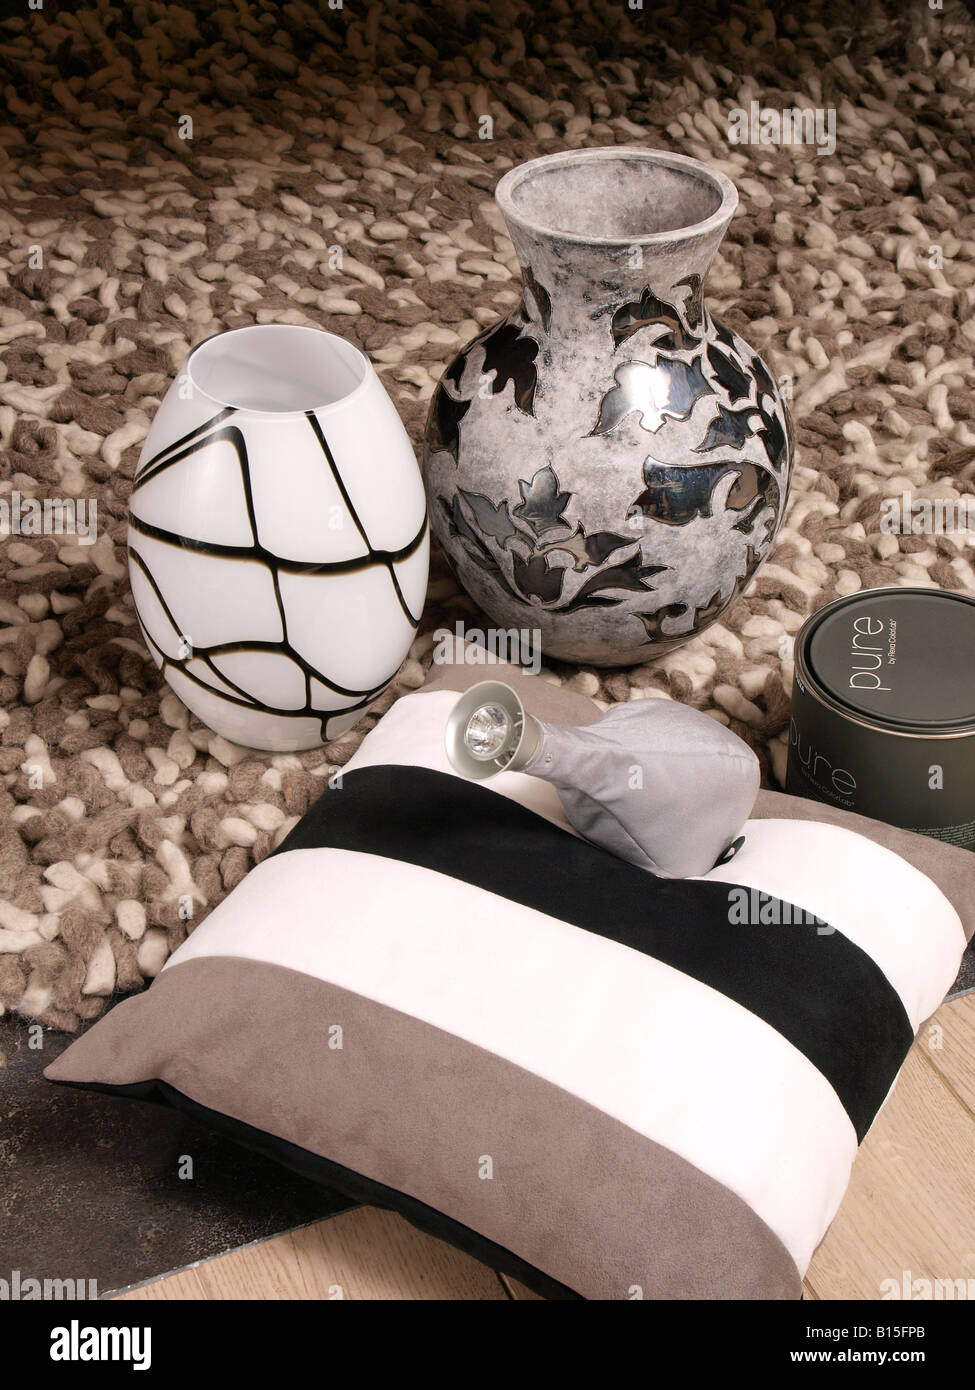 Combining trendy modern interior items in brown grey earth colours vases carpet light pillow - Stock Image